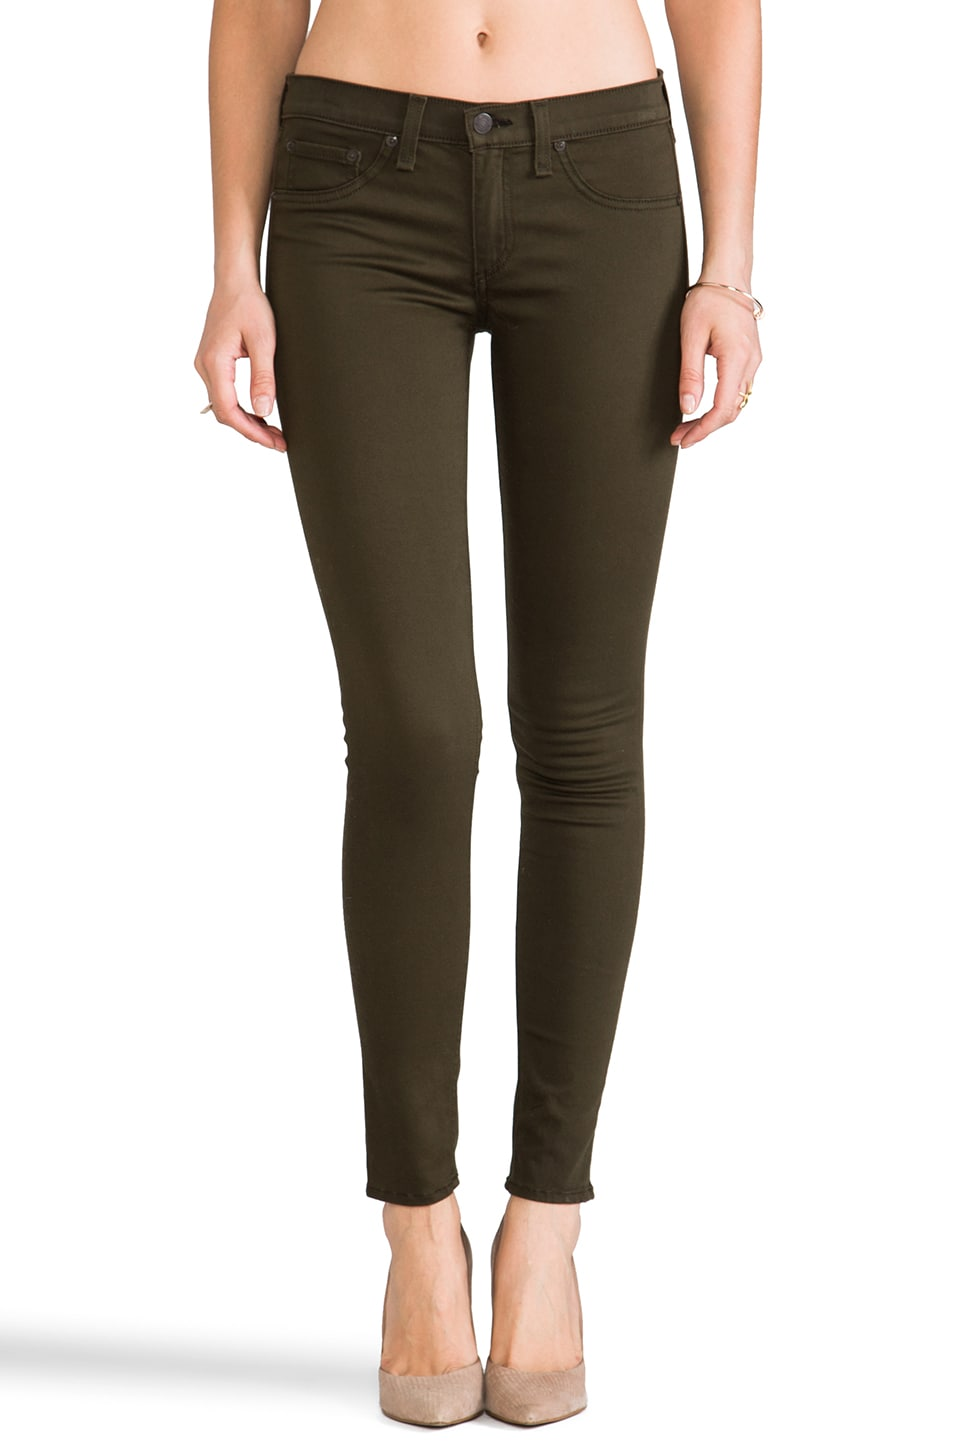 rag & bone/JEAN The Legging in Army Sateen